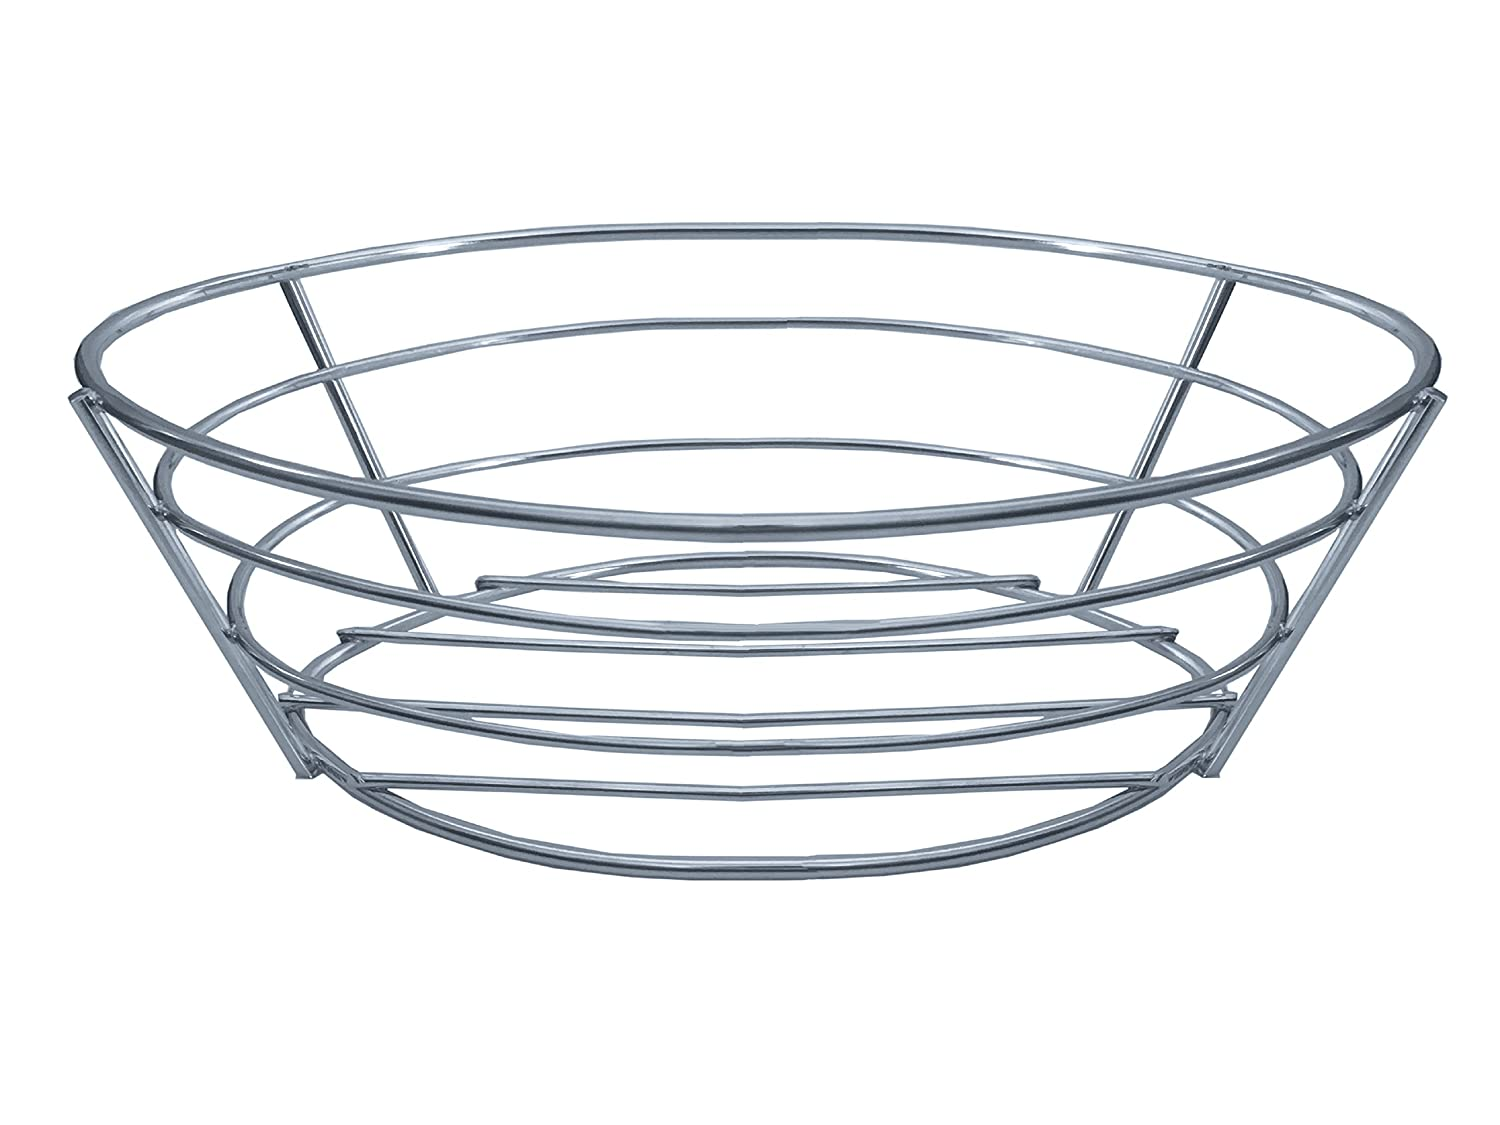 Cuisinox Oval Bread Basket BAS-2215